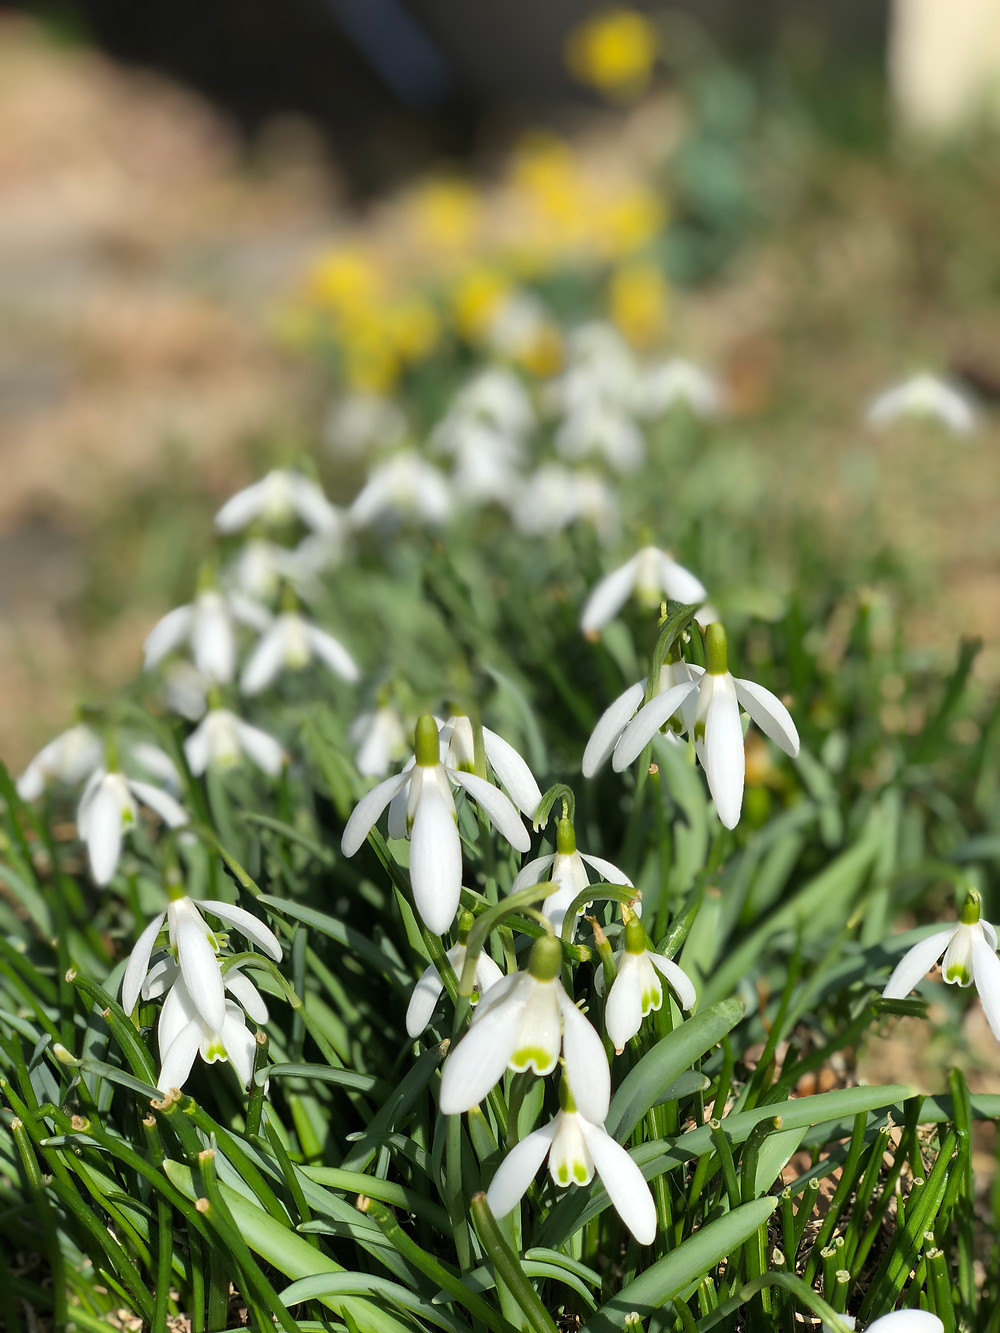 Snow drops can be easily increased and go dormant